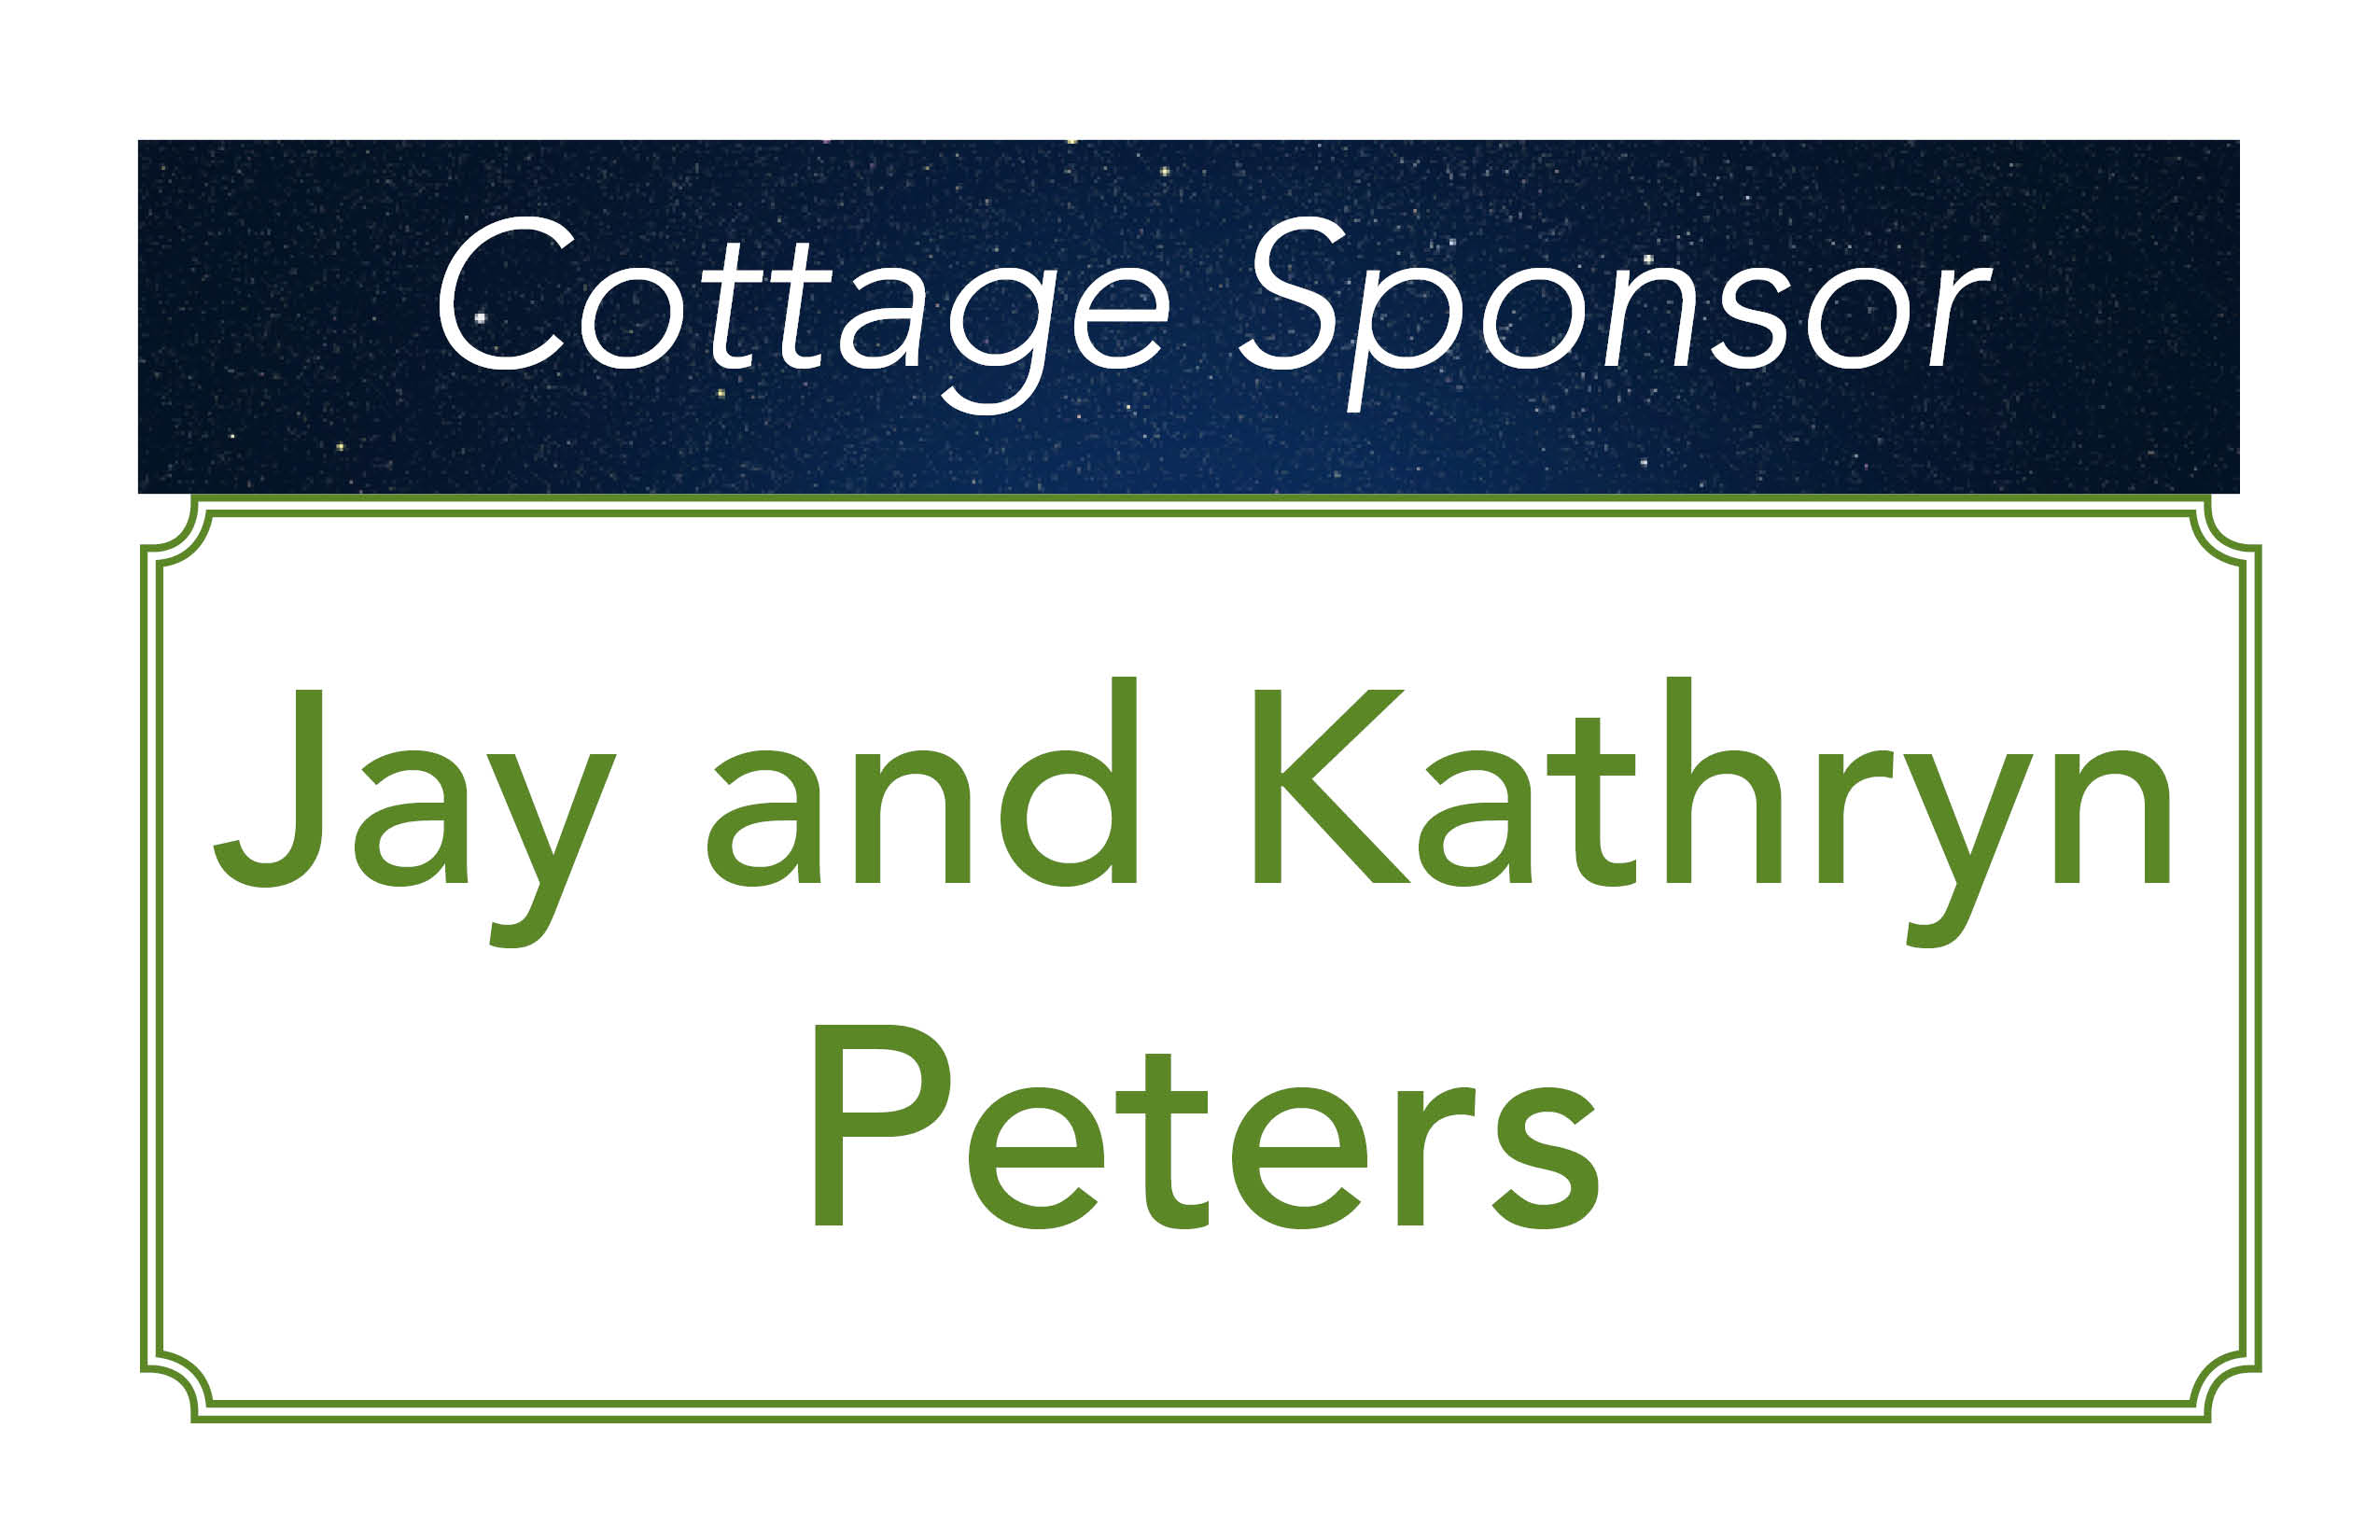 Jay and Kathryn Peters, Cottage Sponsors